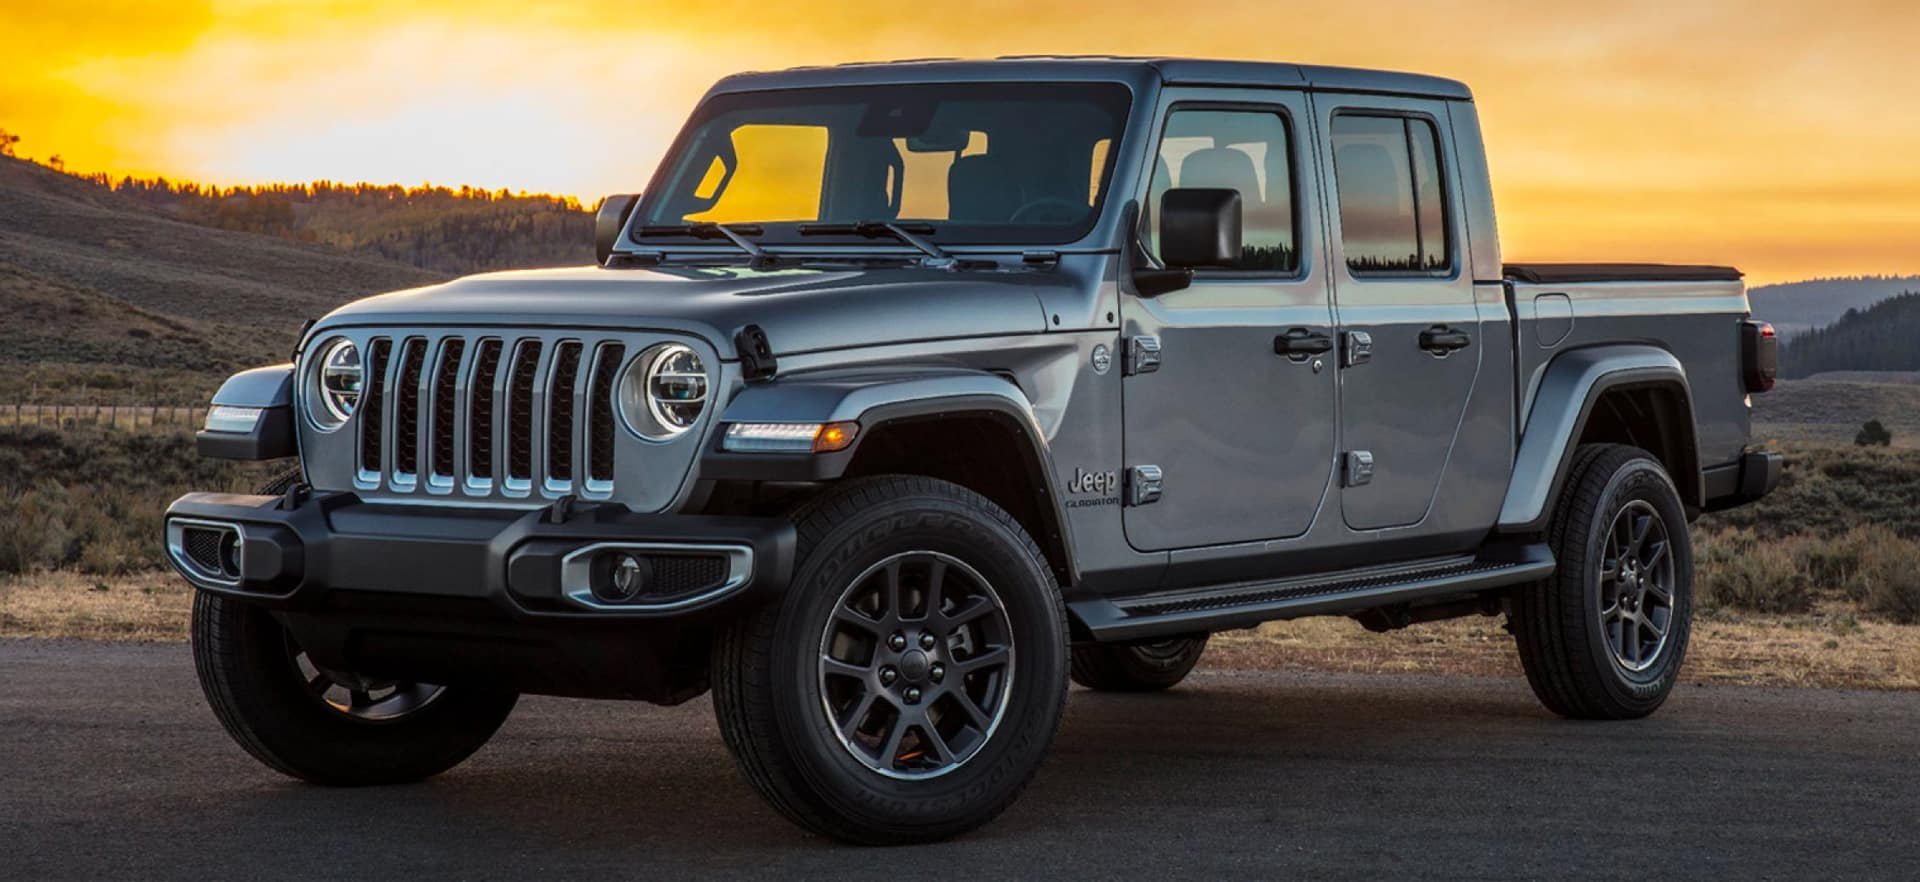 JeepGladiator_1